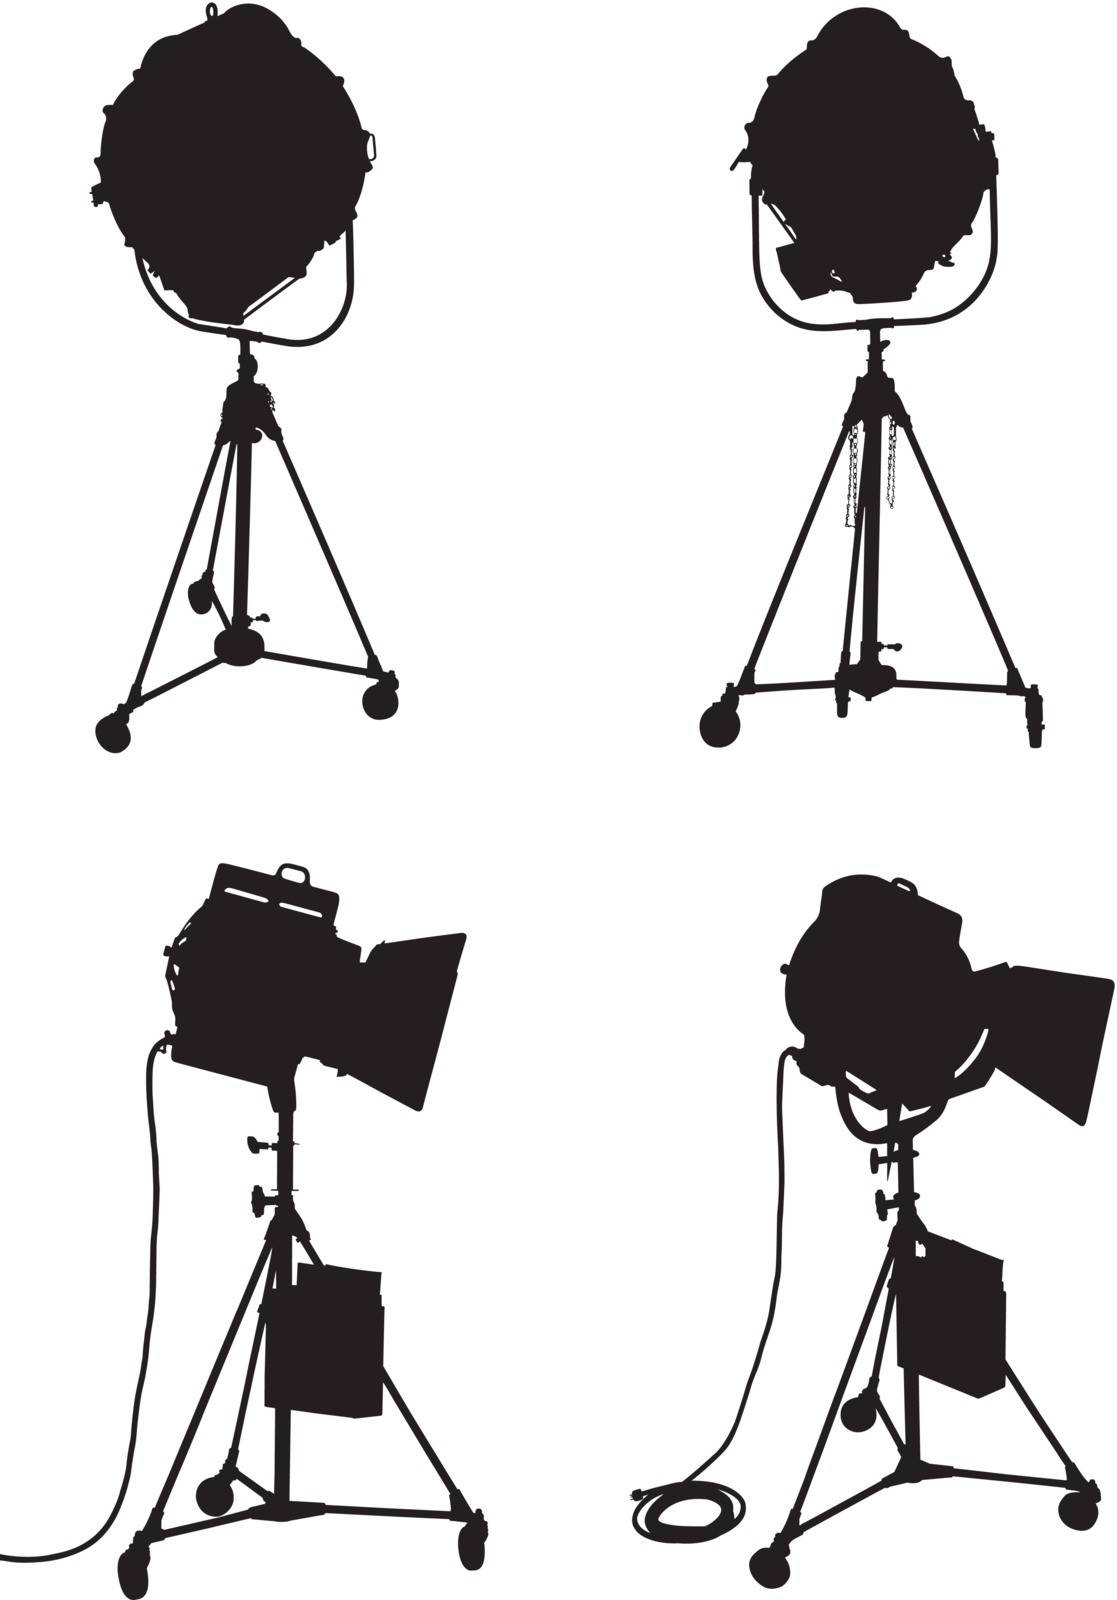 Set of four professional lighting equipment silhouettes